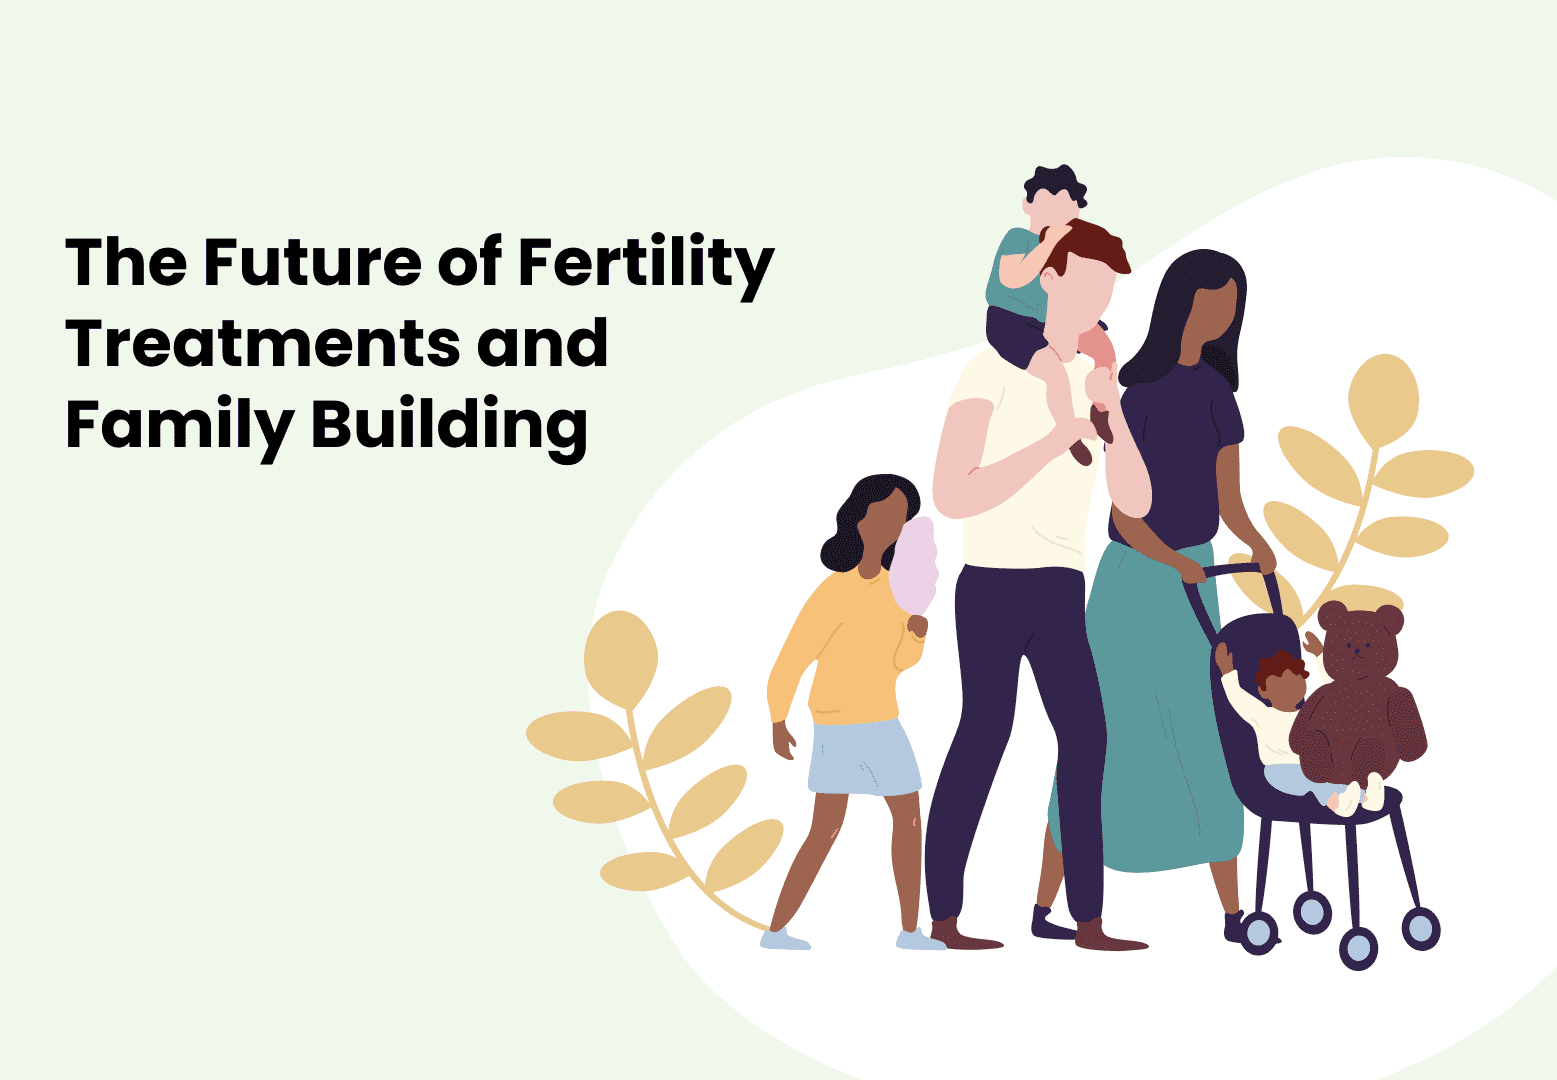 The Future of Fertility Treatments and Family Building in 2021